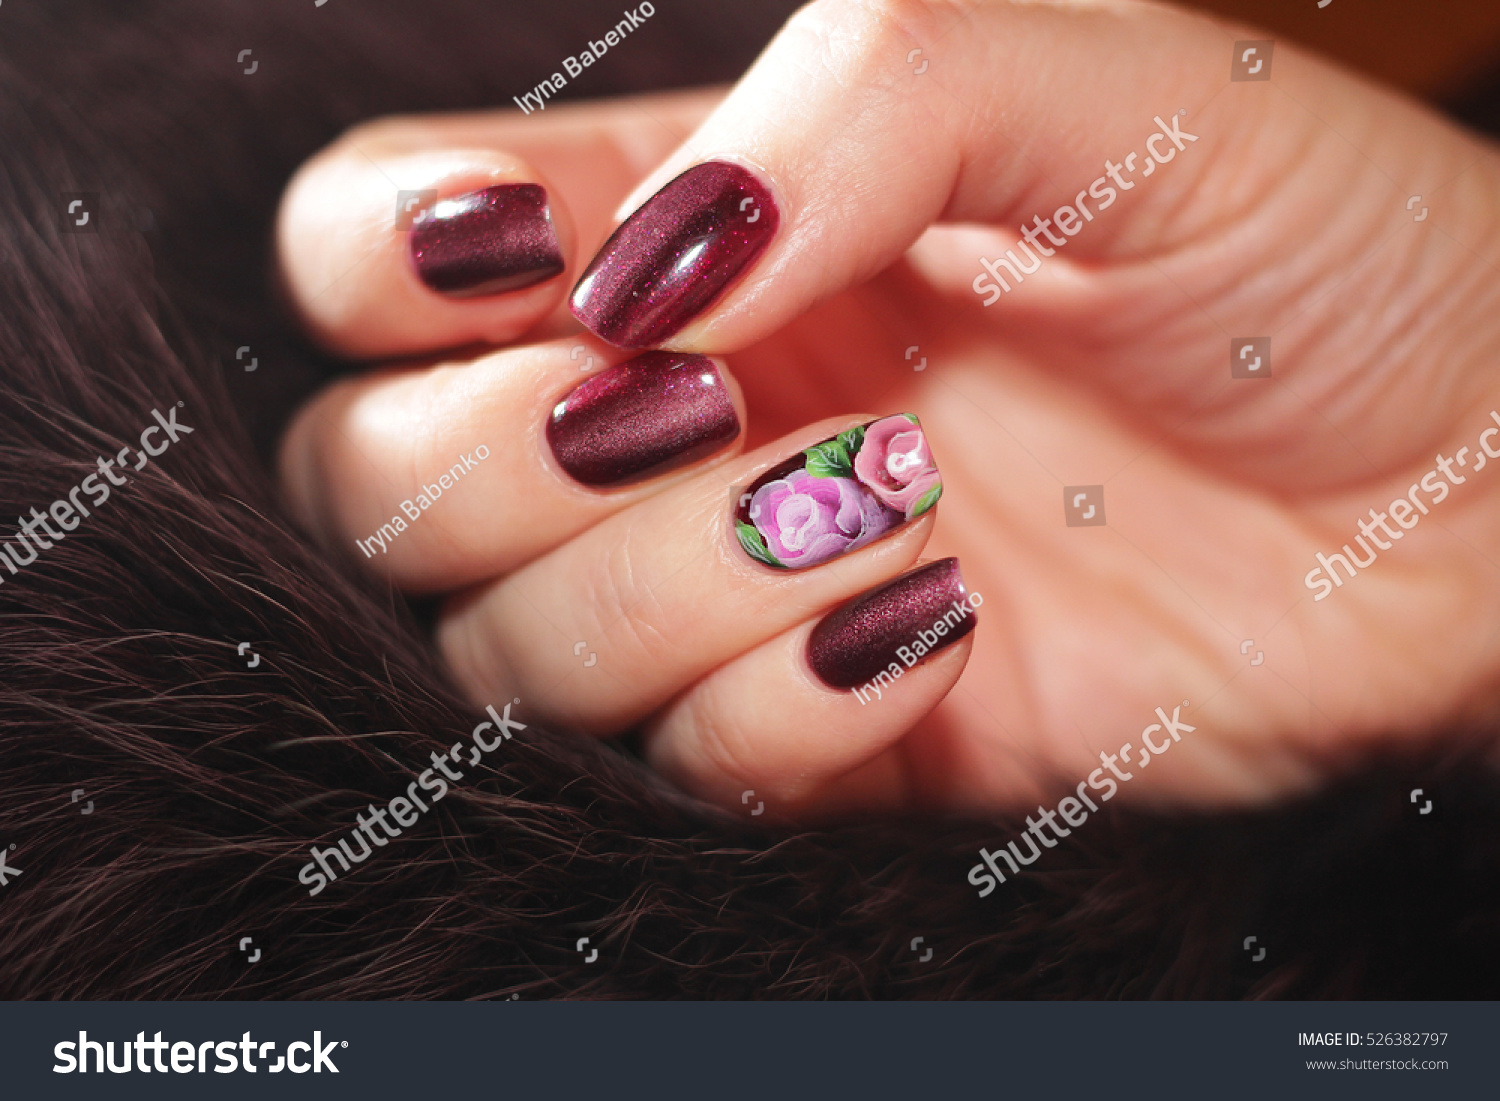 Exclusive Nail Designs Color Fur Gel Stock Photo (Royalty Free ...